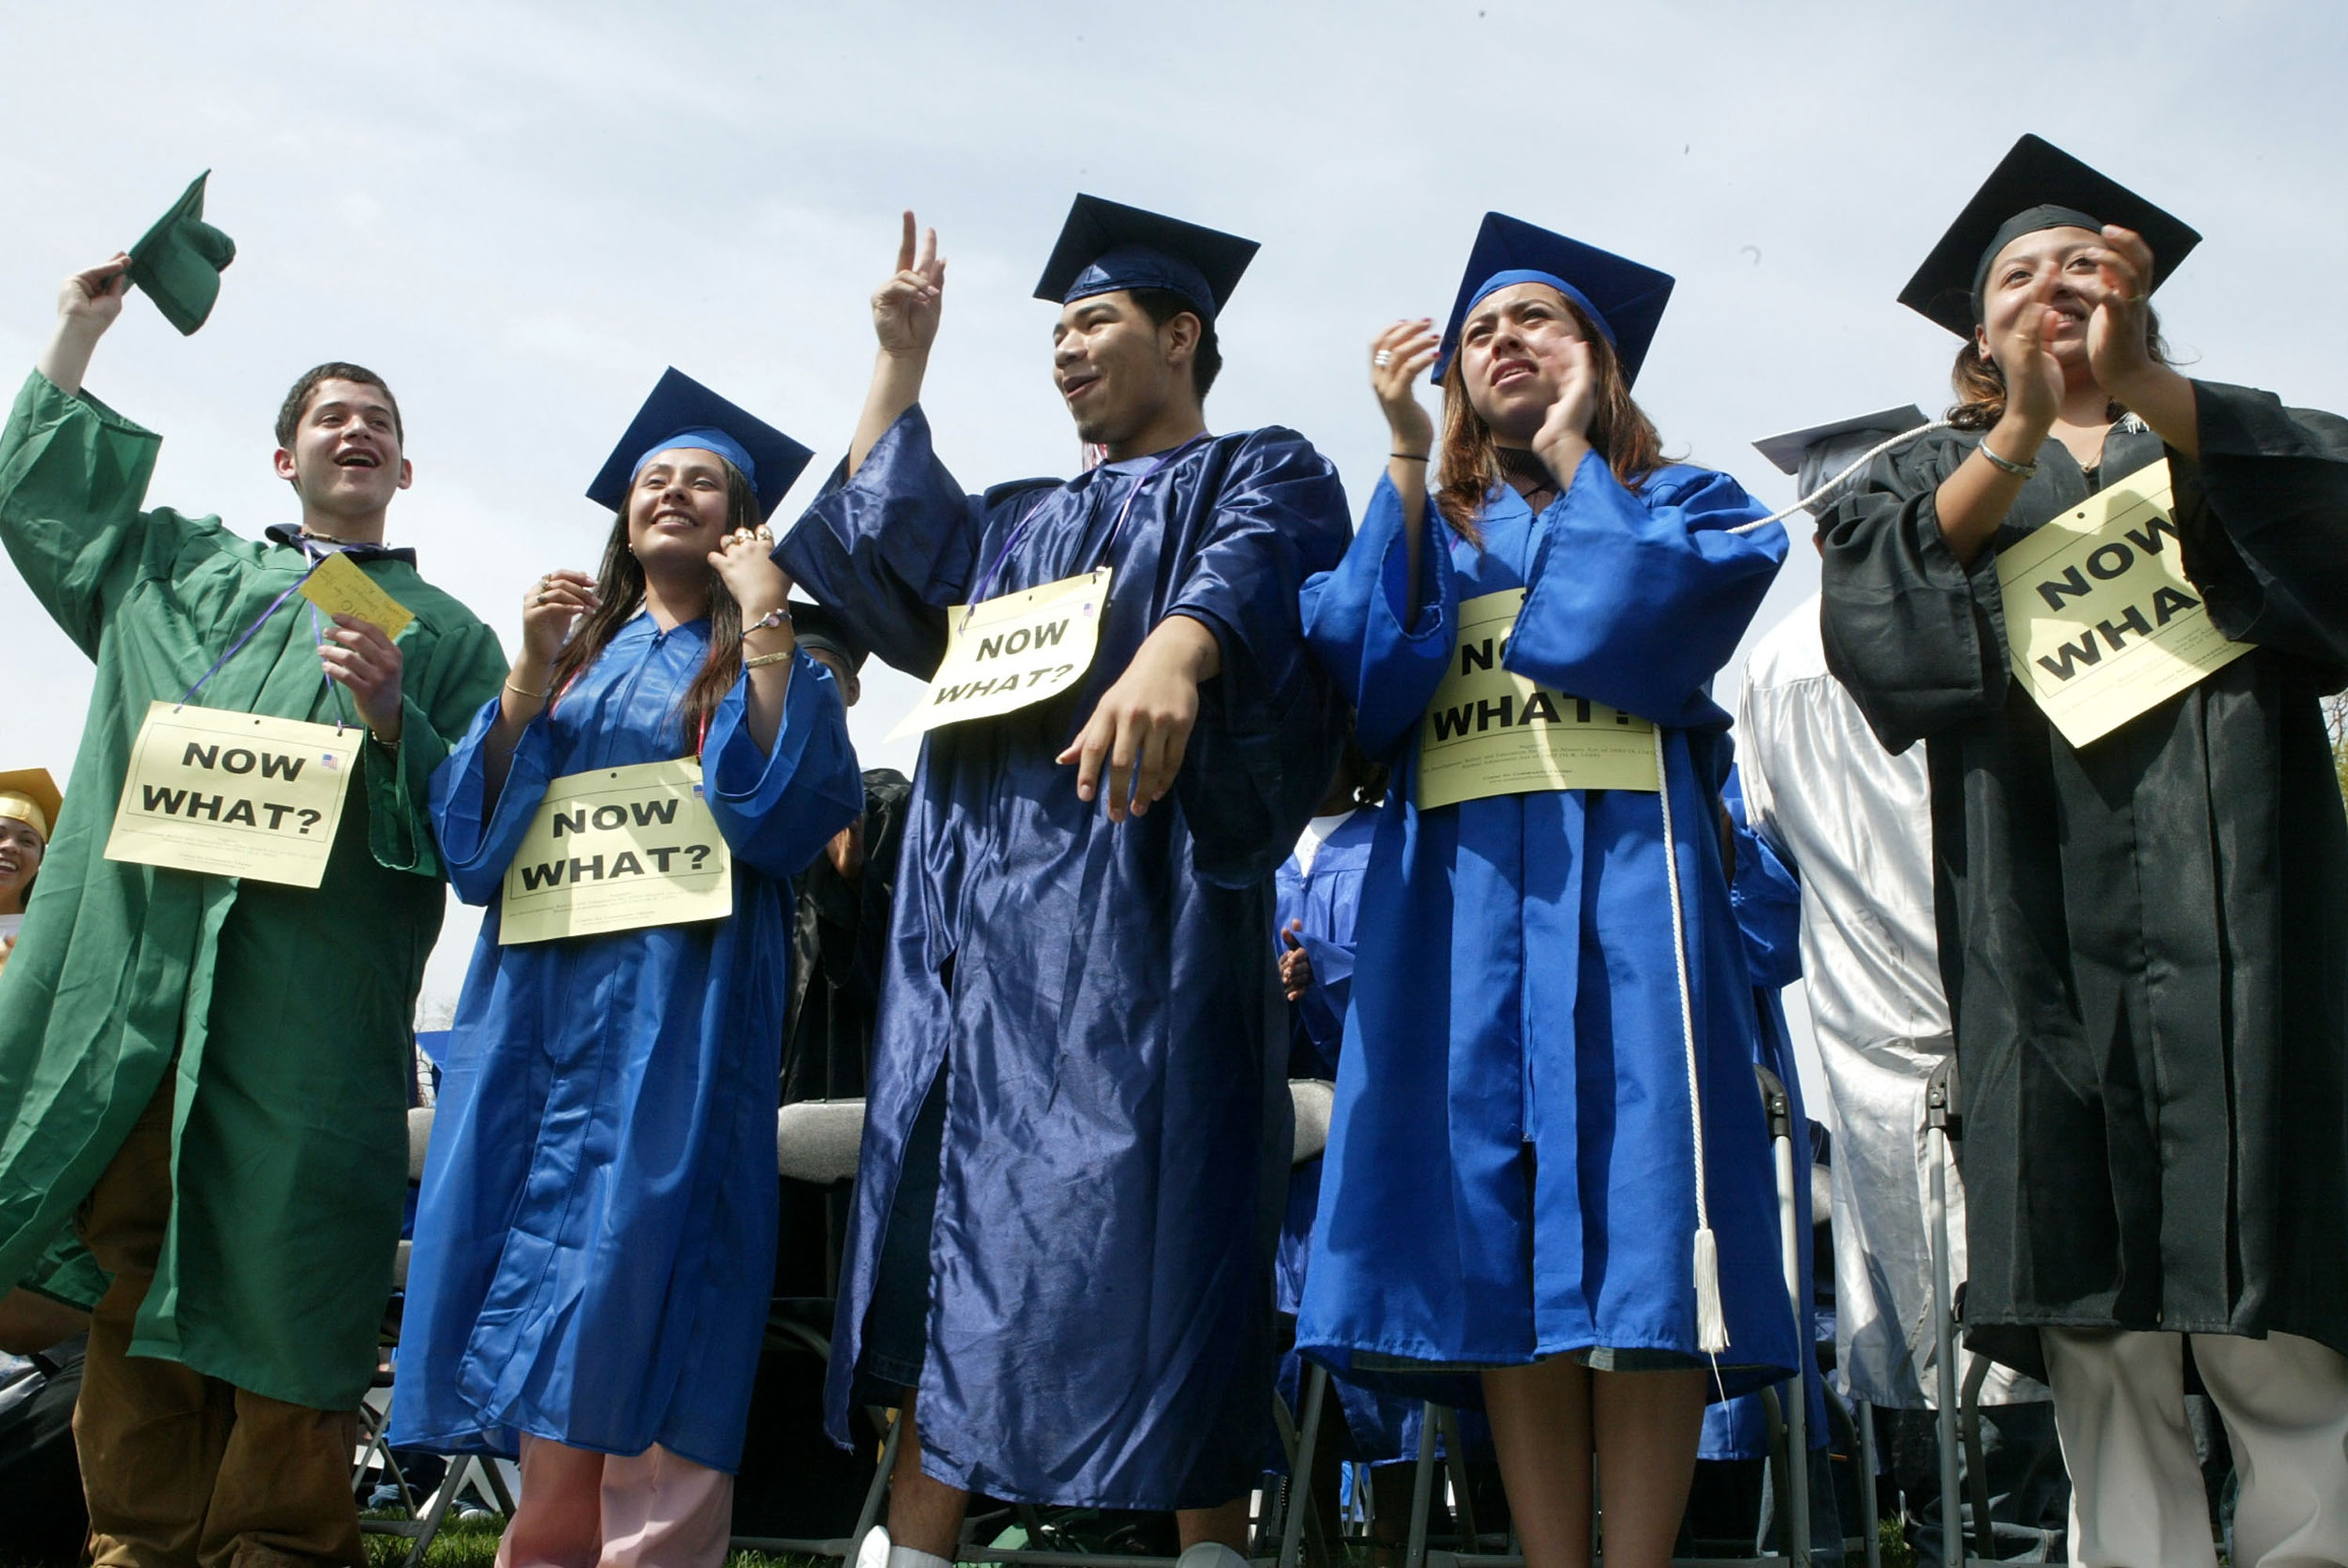 scholarships for undocumented students Scholarships for all whether you're a college freshman or returning adult topics that matter timely information on students, scholarships, and schools.